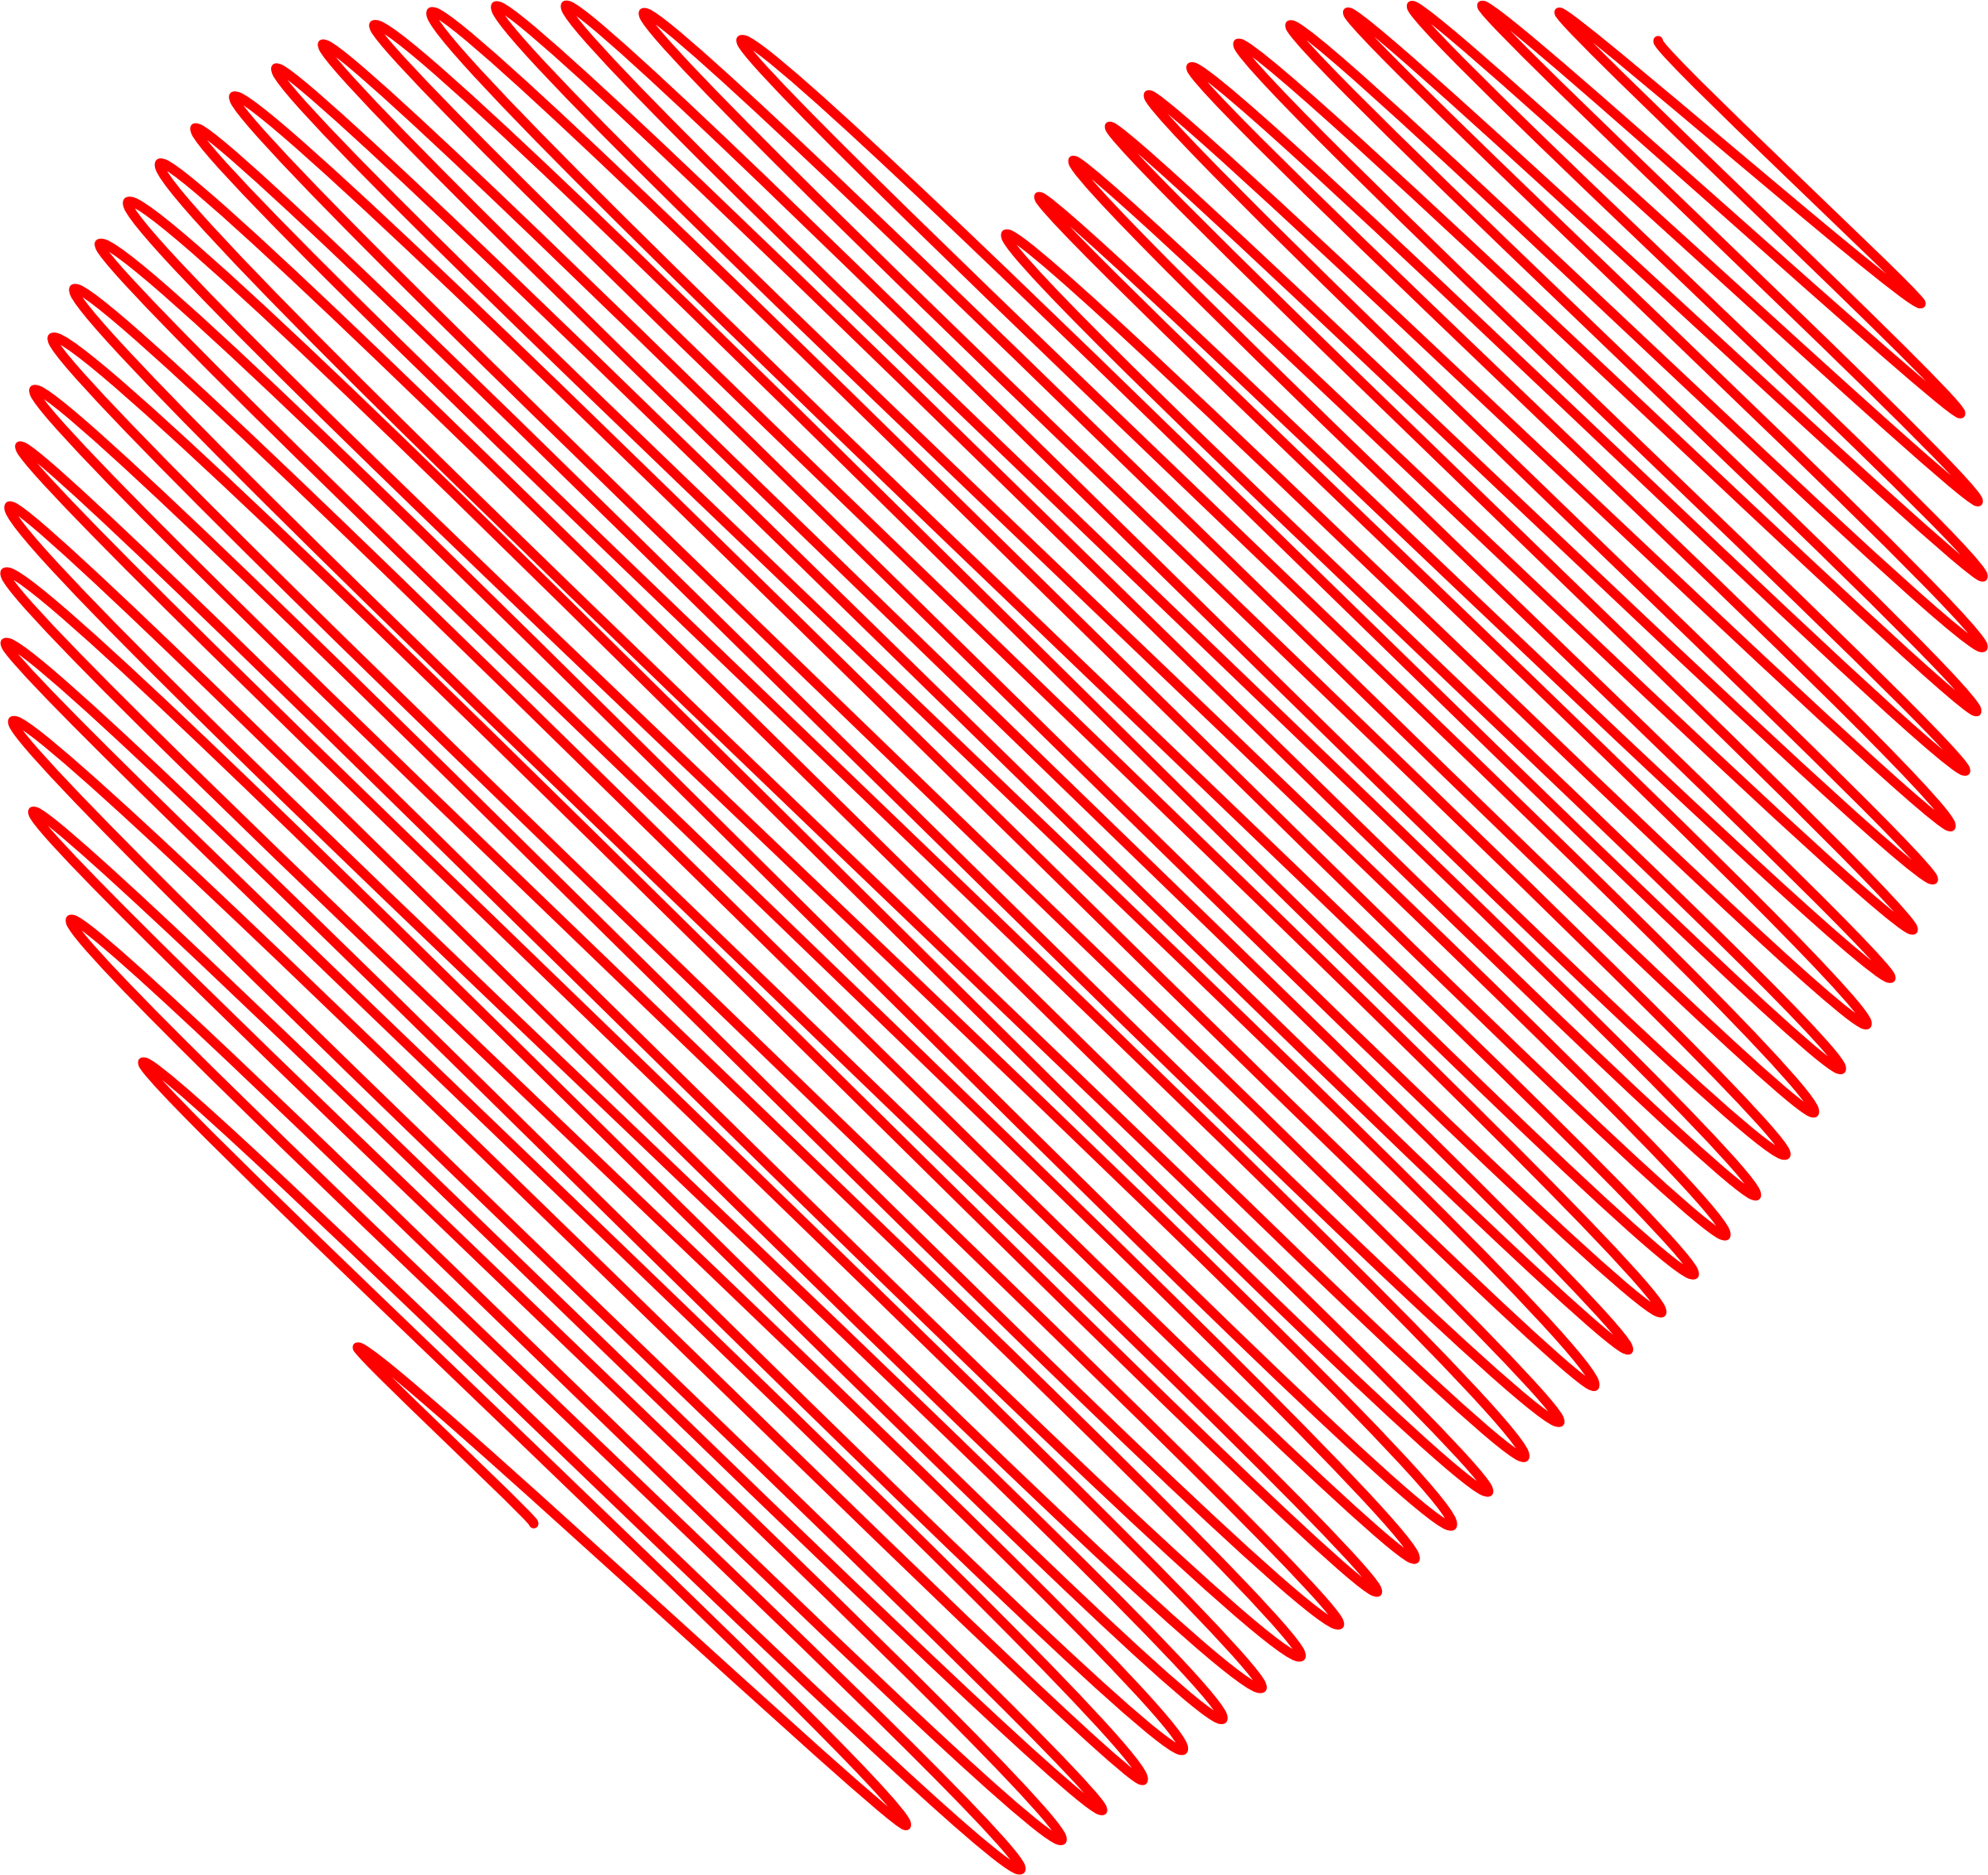 Long heart clipart image freeuse stock Clipart - Scribble Heart image freeuse stock